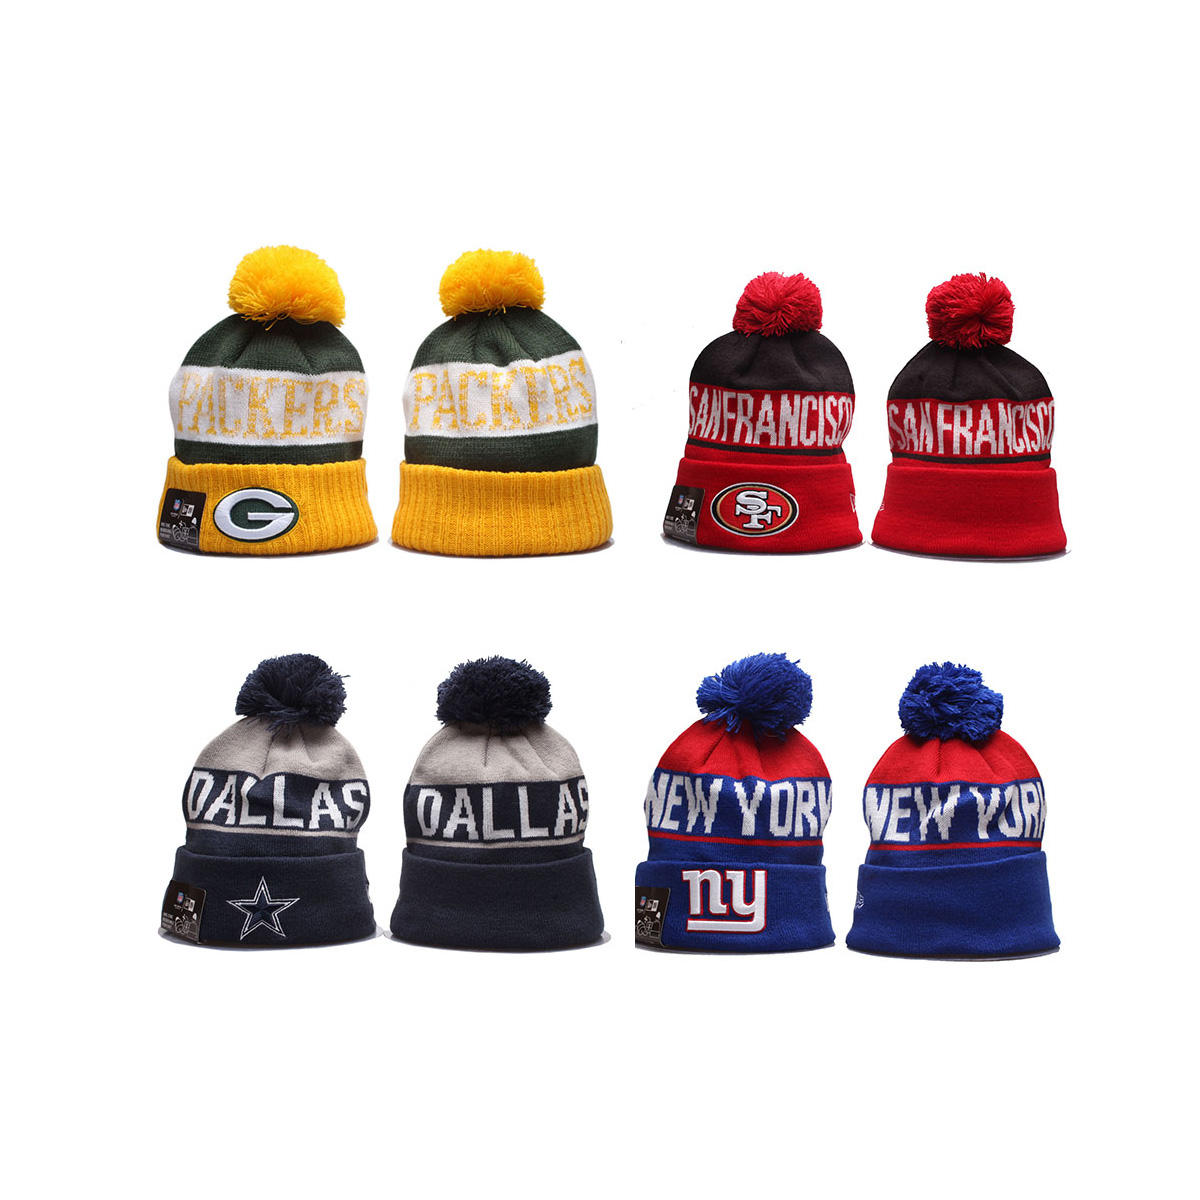 Hot sales knitted NFL beanies winter hats for 32 teams